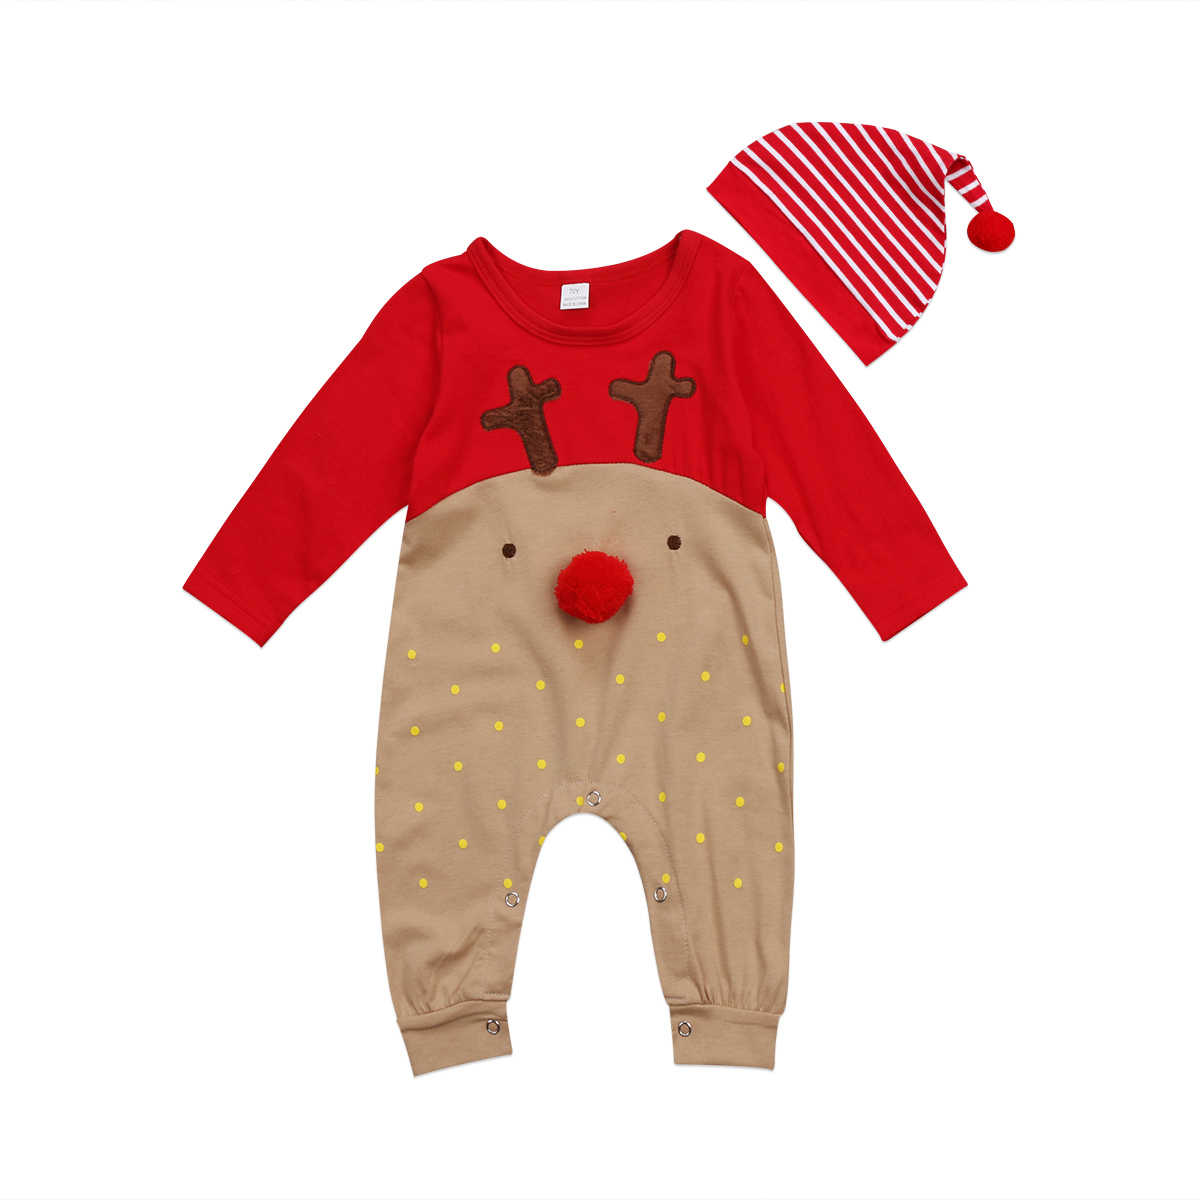 New 2018 Cute Newborn Baby Boy Girl 2Pcs Christmas Reindeer Long Sleeve Romper Bodysuit Playsuit Clothes Outfit